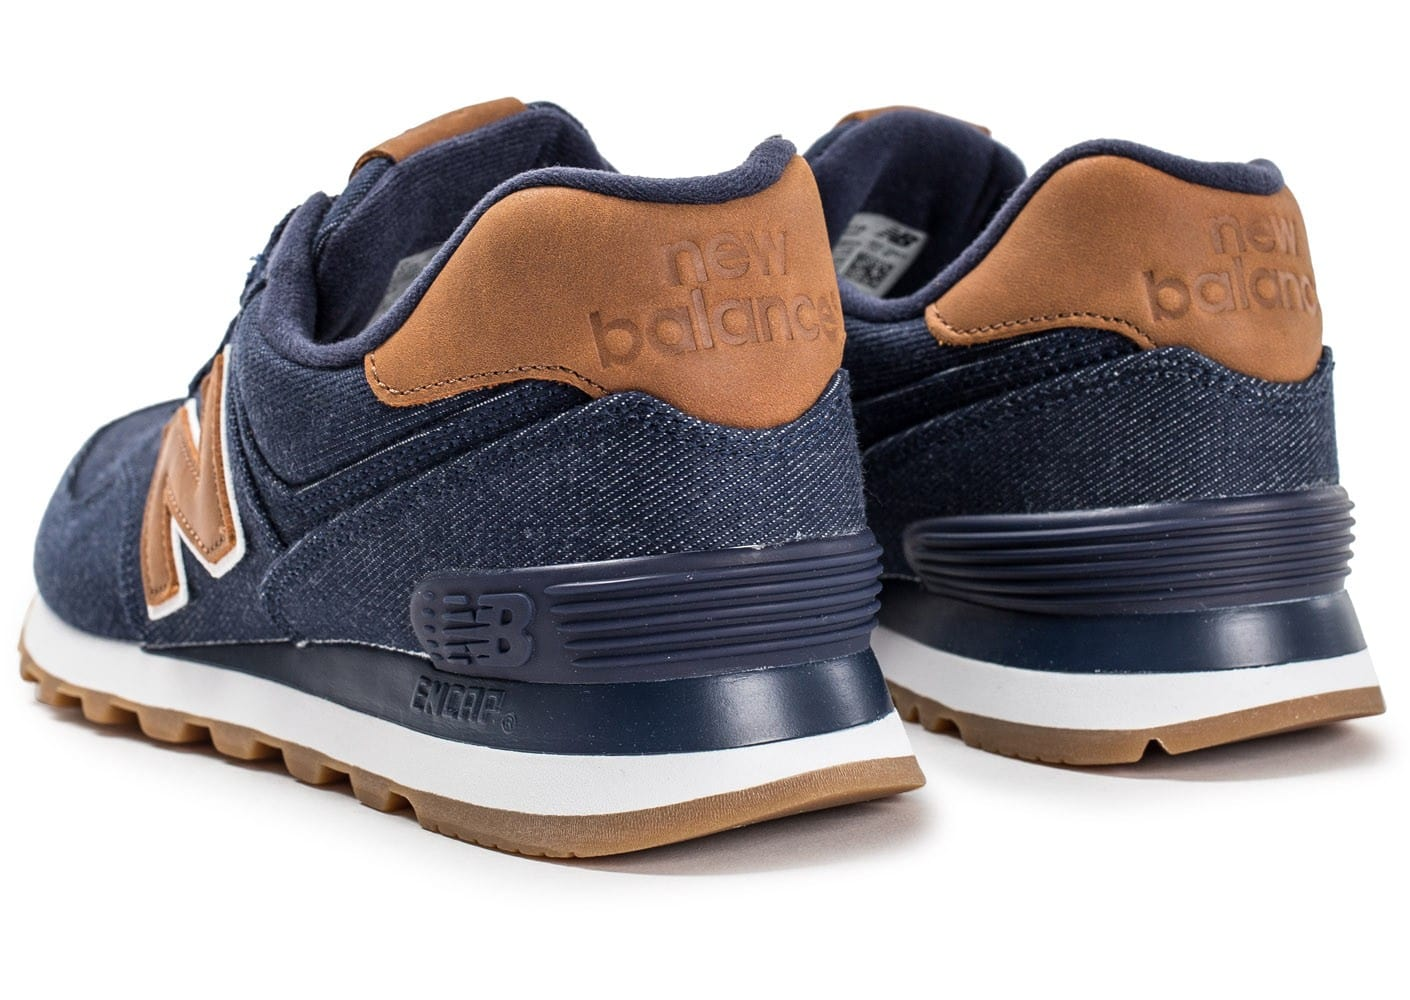 reputable site 08a90 273cb New Balance ML574TXB Denim bleu marine - Chaussures Baskets ...